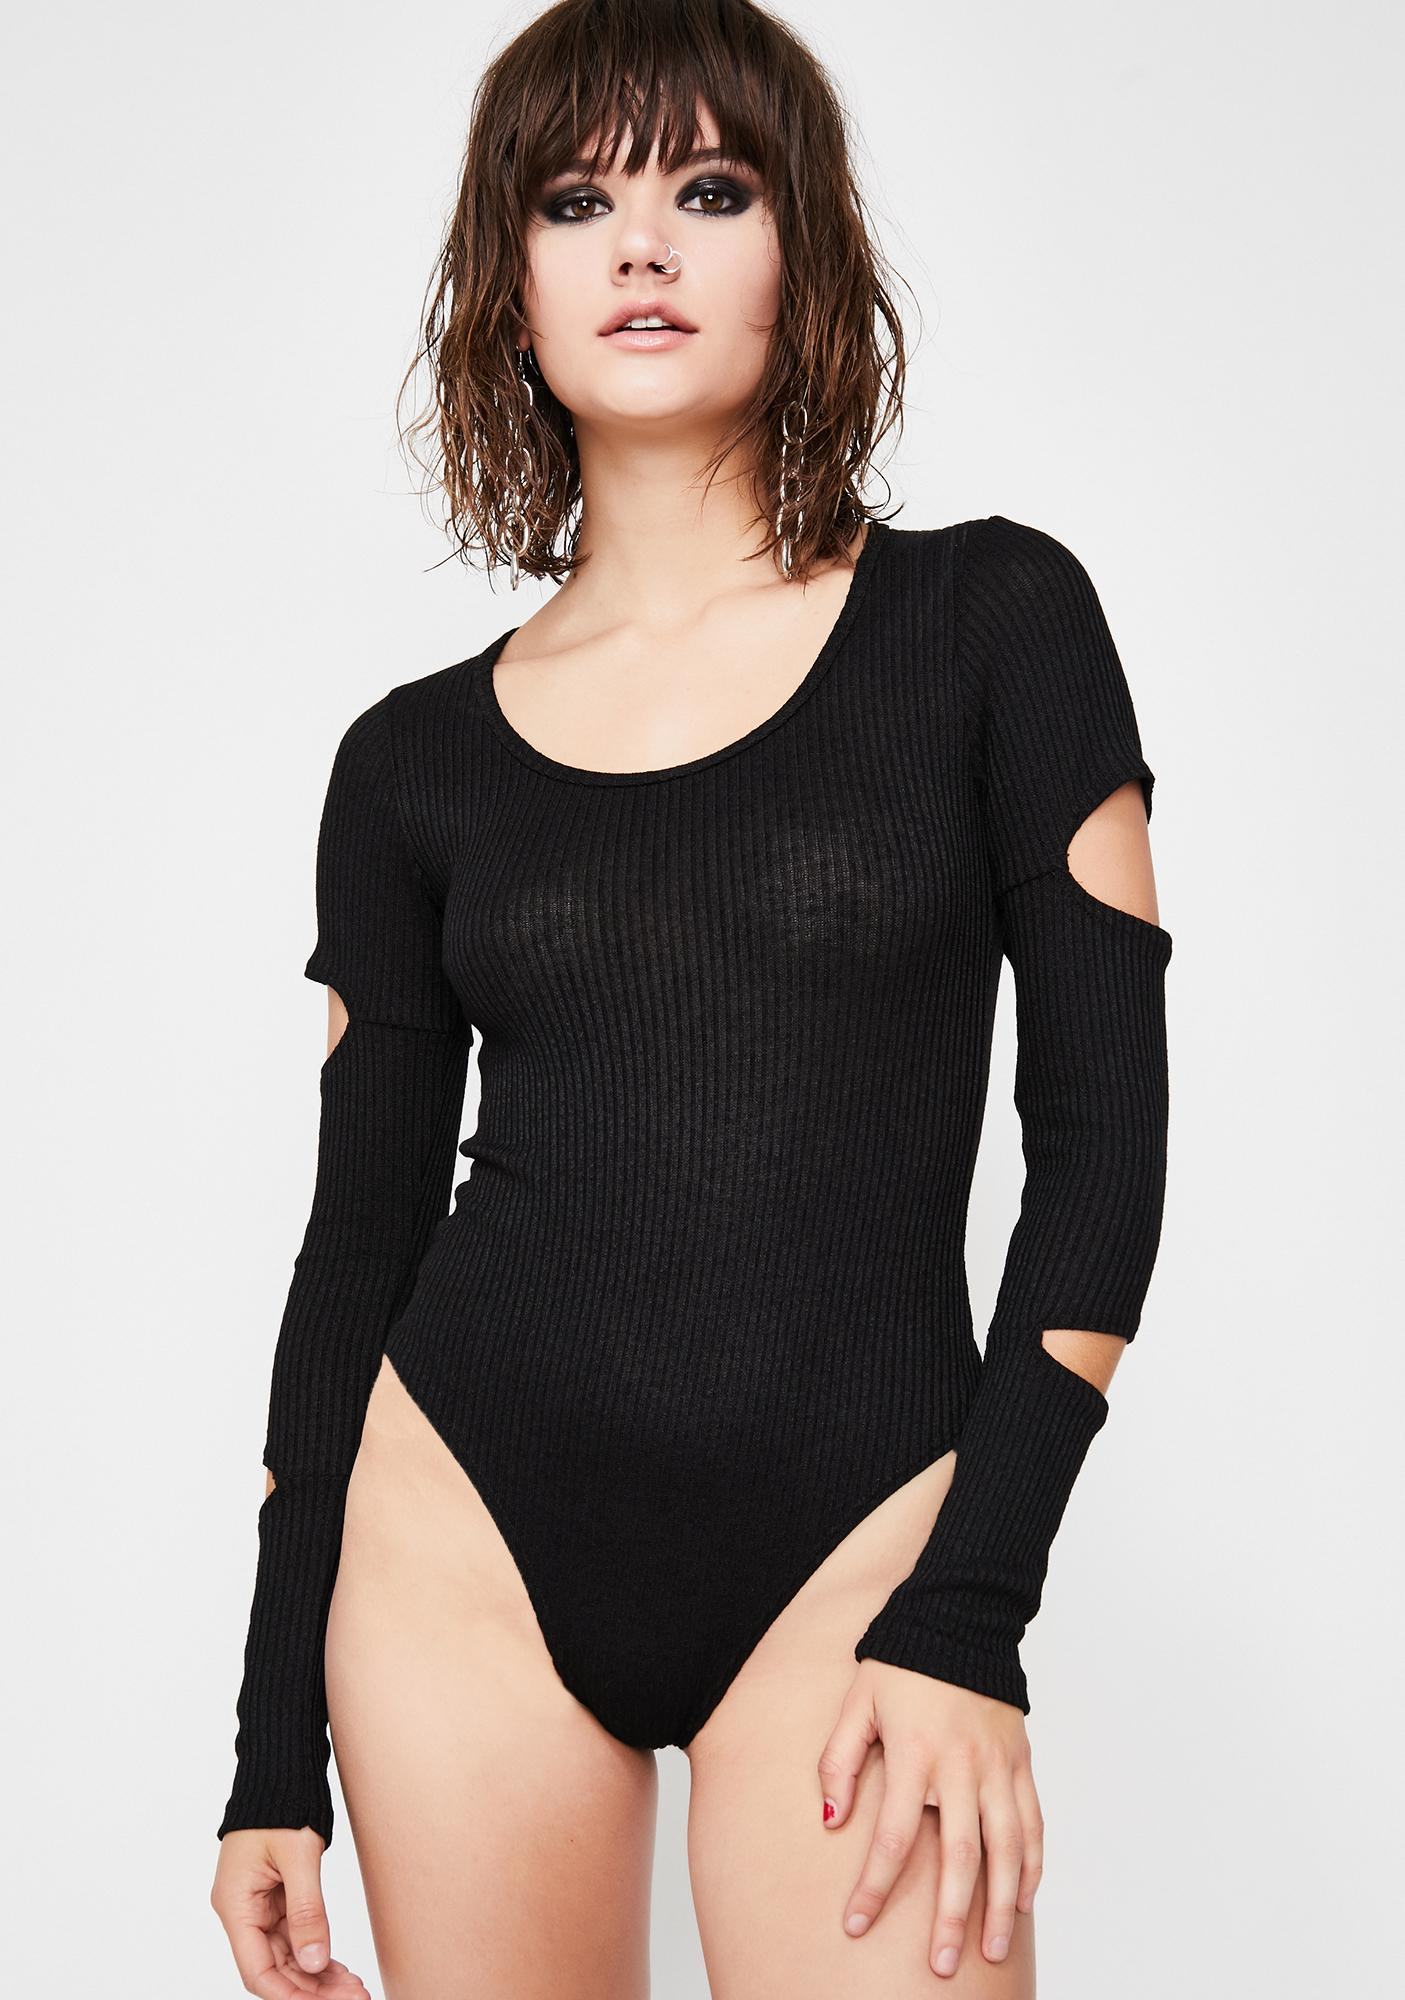 Disruptive Dilemma Cutout Bodysuit